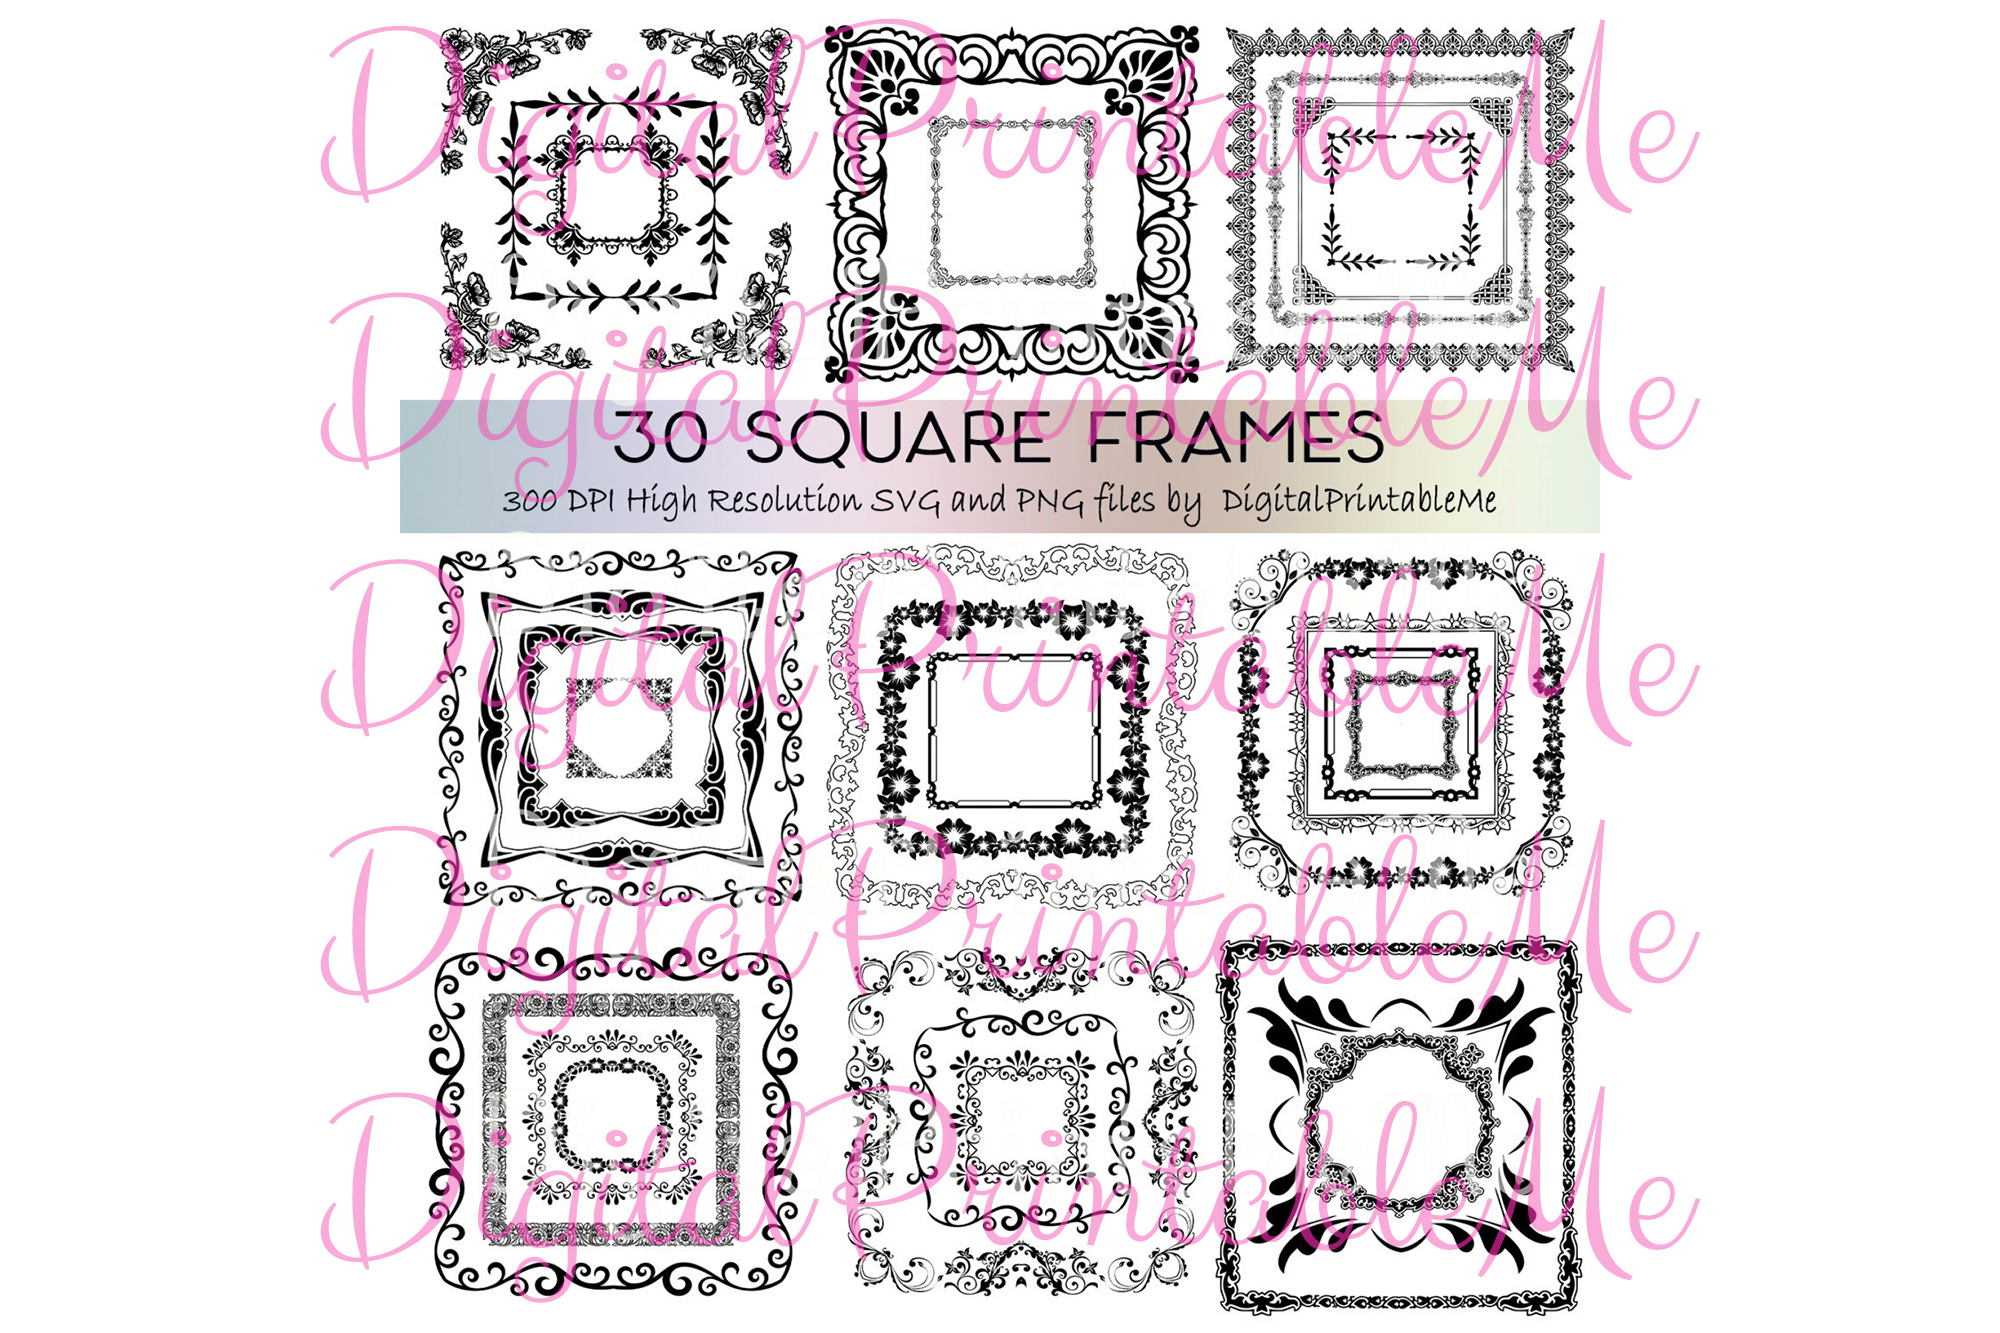 Download Free Clip Art Frames Set Border 30 Art Deco Graphic By for Cricut Explore, Silhouette and other cutting machines.